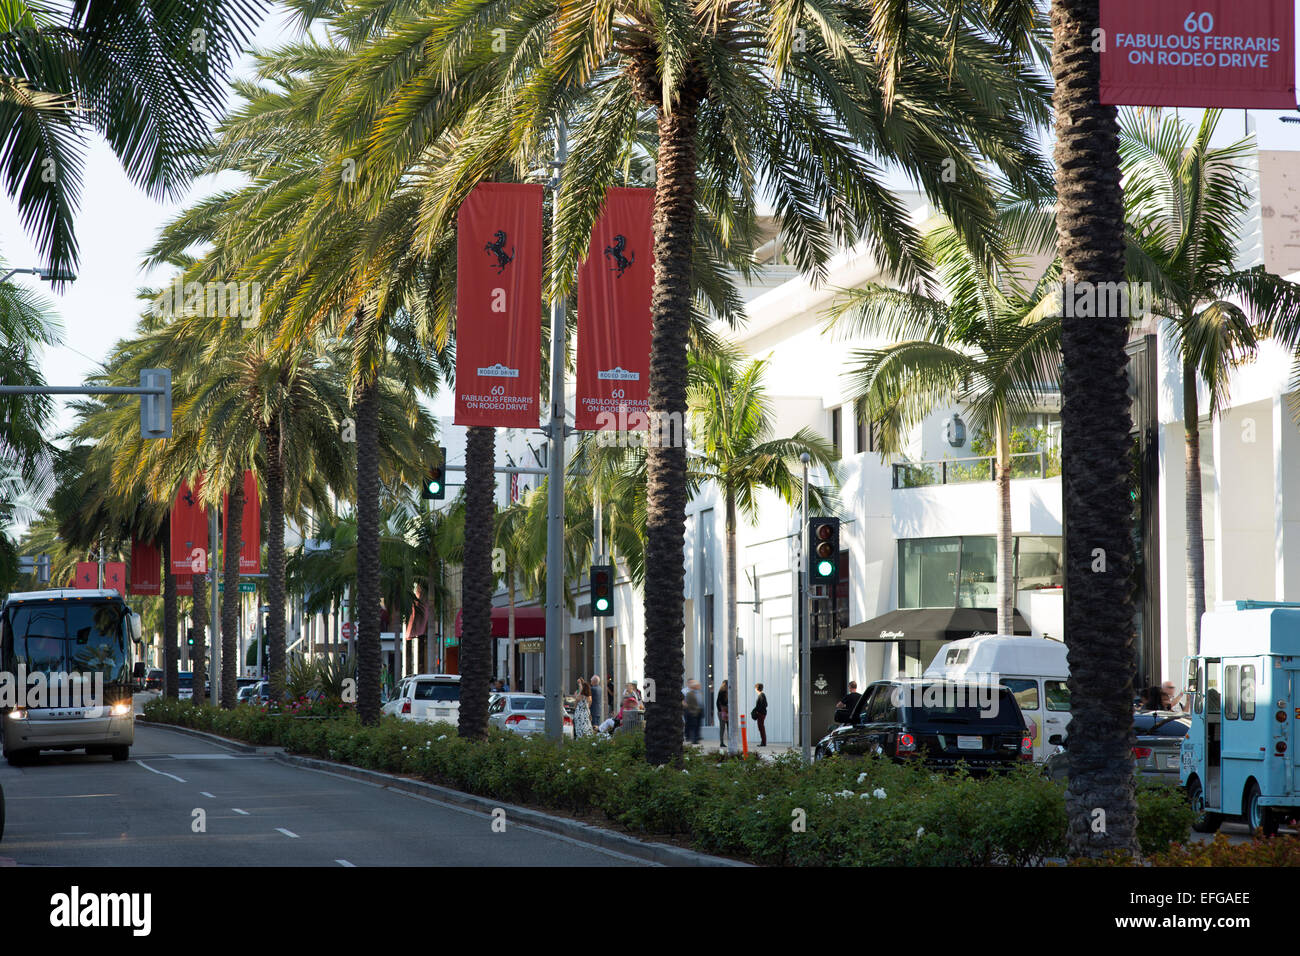 NORTH RODEO DRIVE BEVERLY HILLS LOS ANGELES CALIFORNIA USA Stock Photo